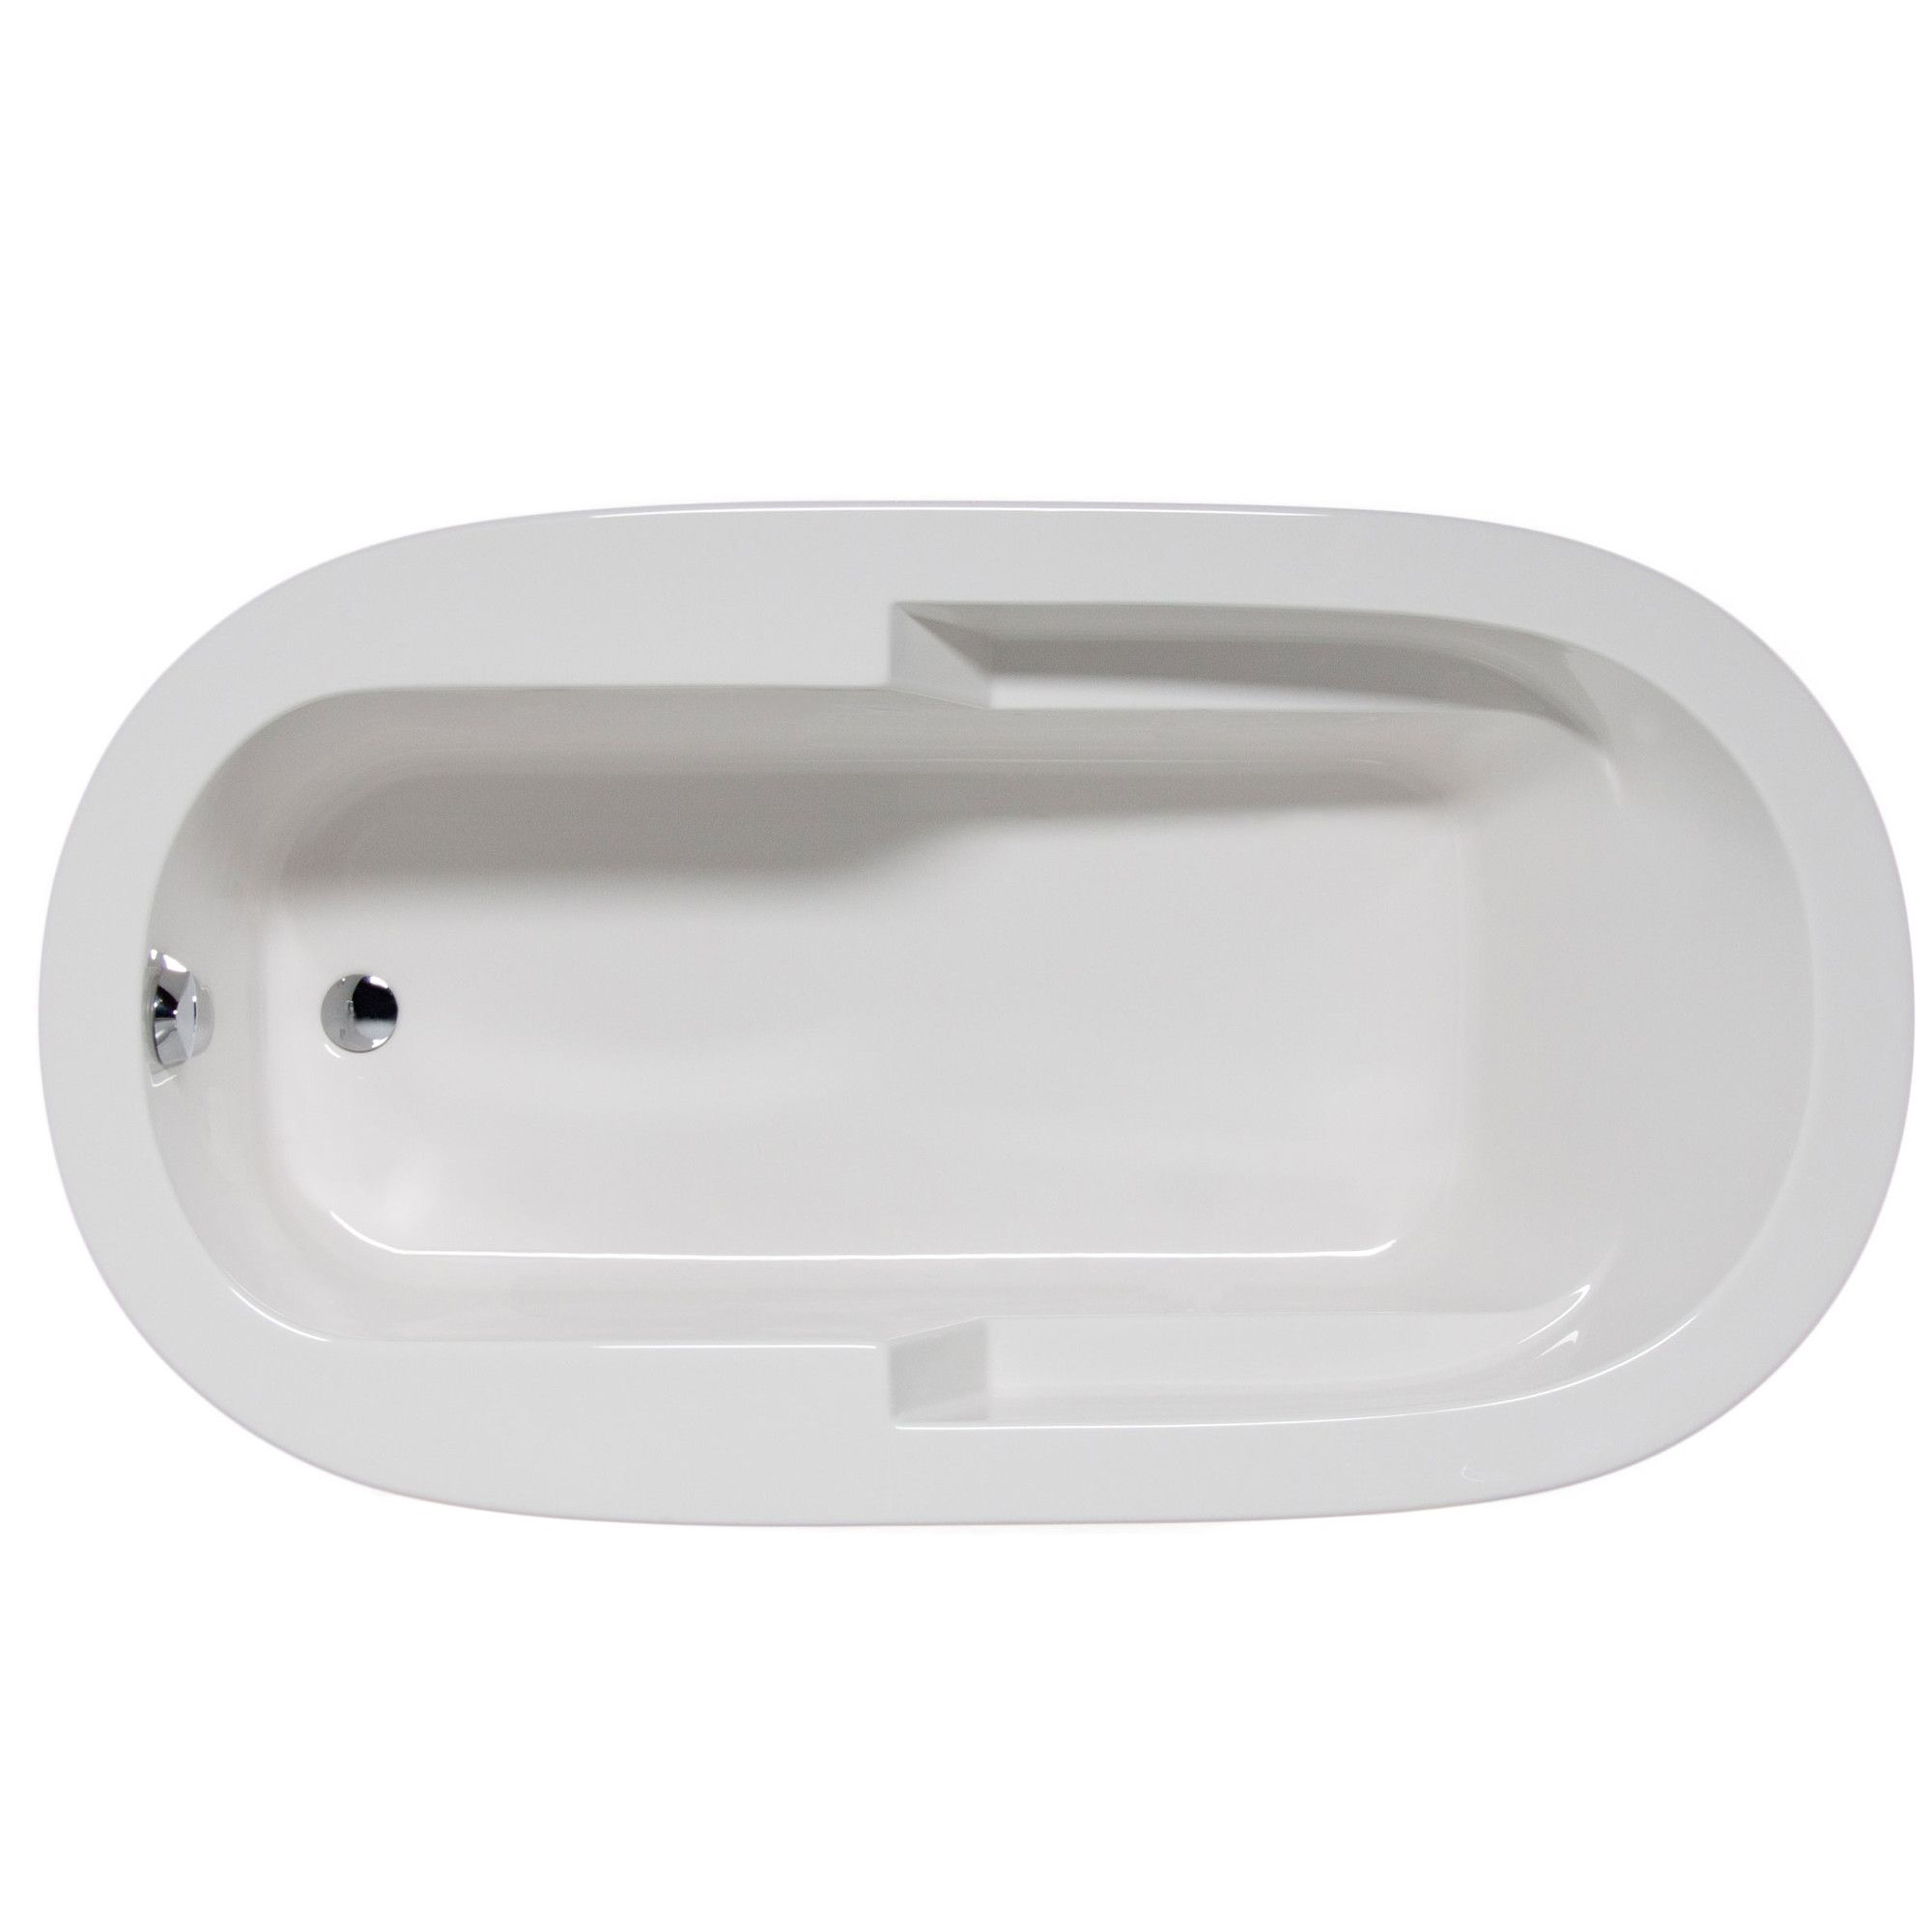 bathtubs at man in romans ancient invest one how it to tubs jet their departments spa organized customer home the your tub lives they handy img bath around important service was knew bodies